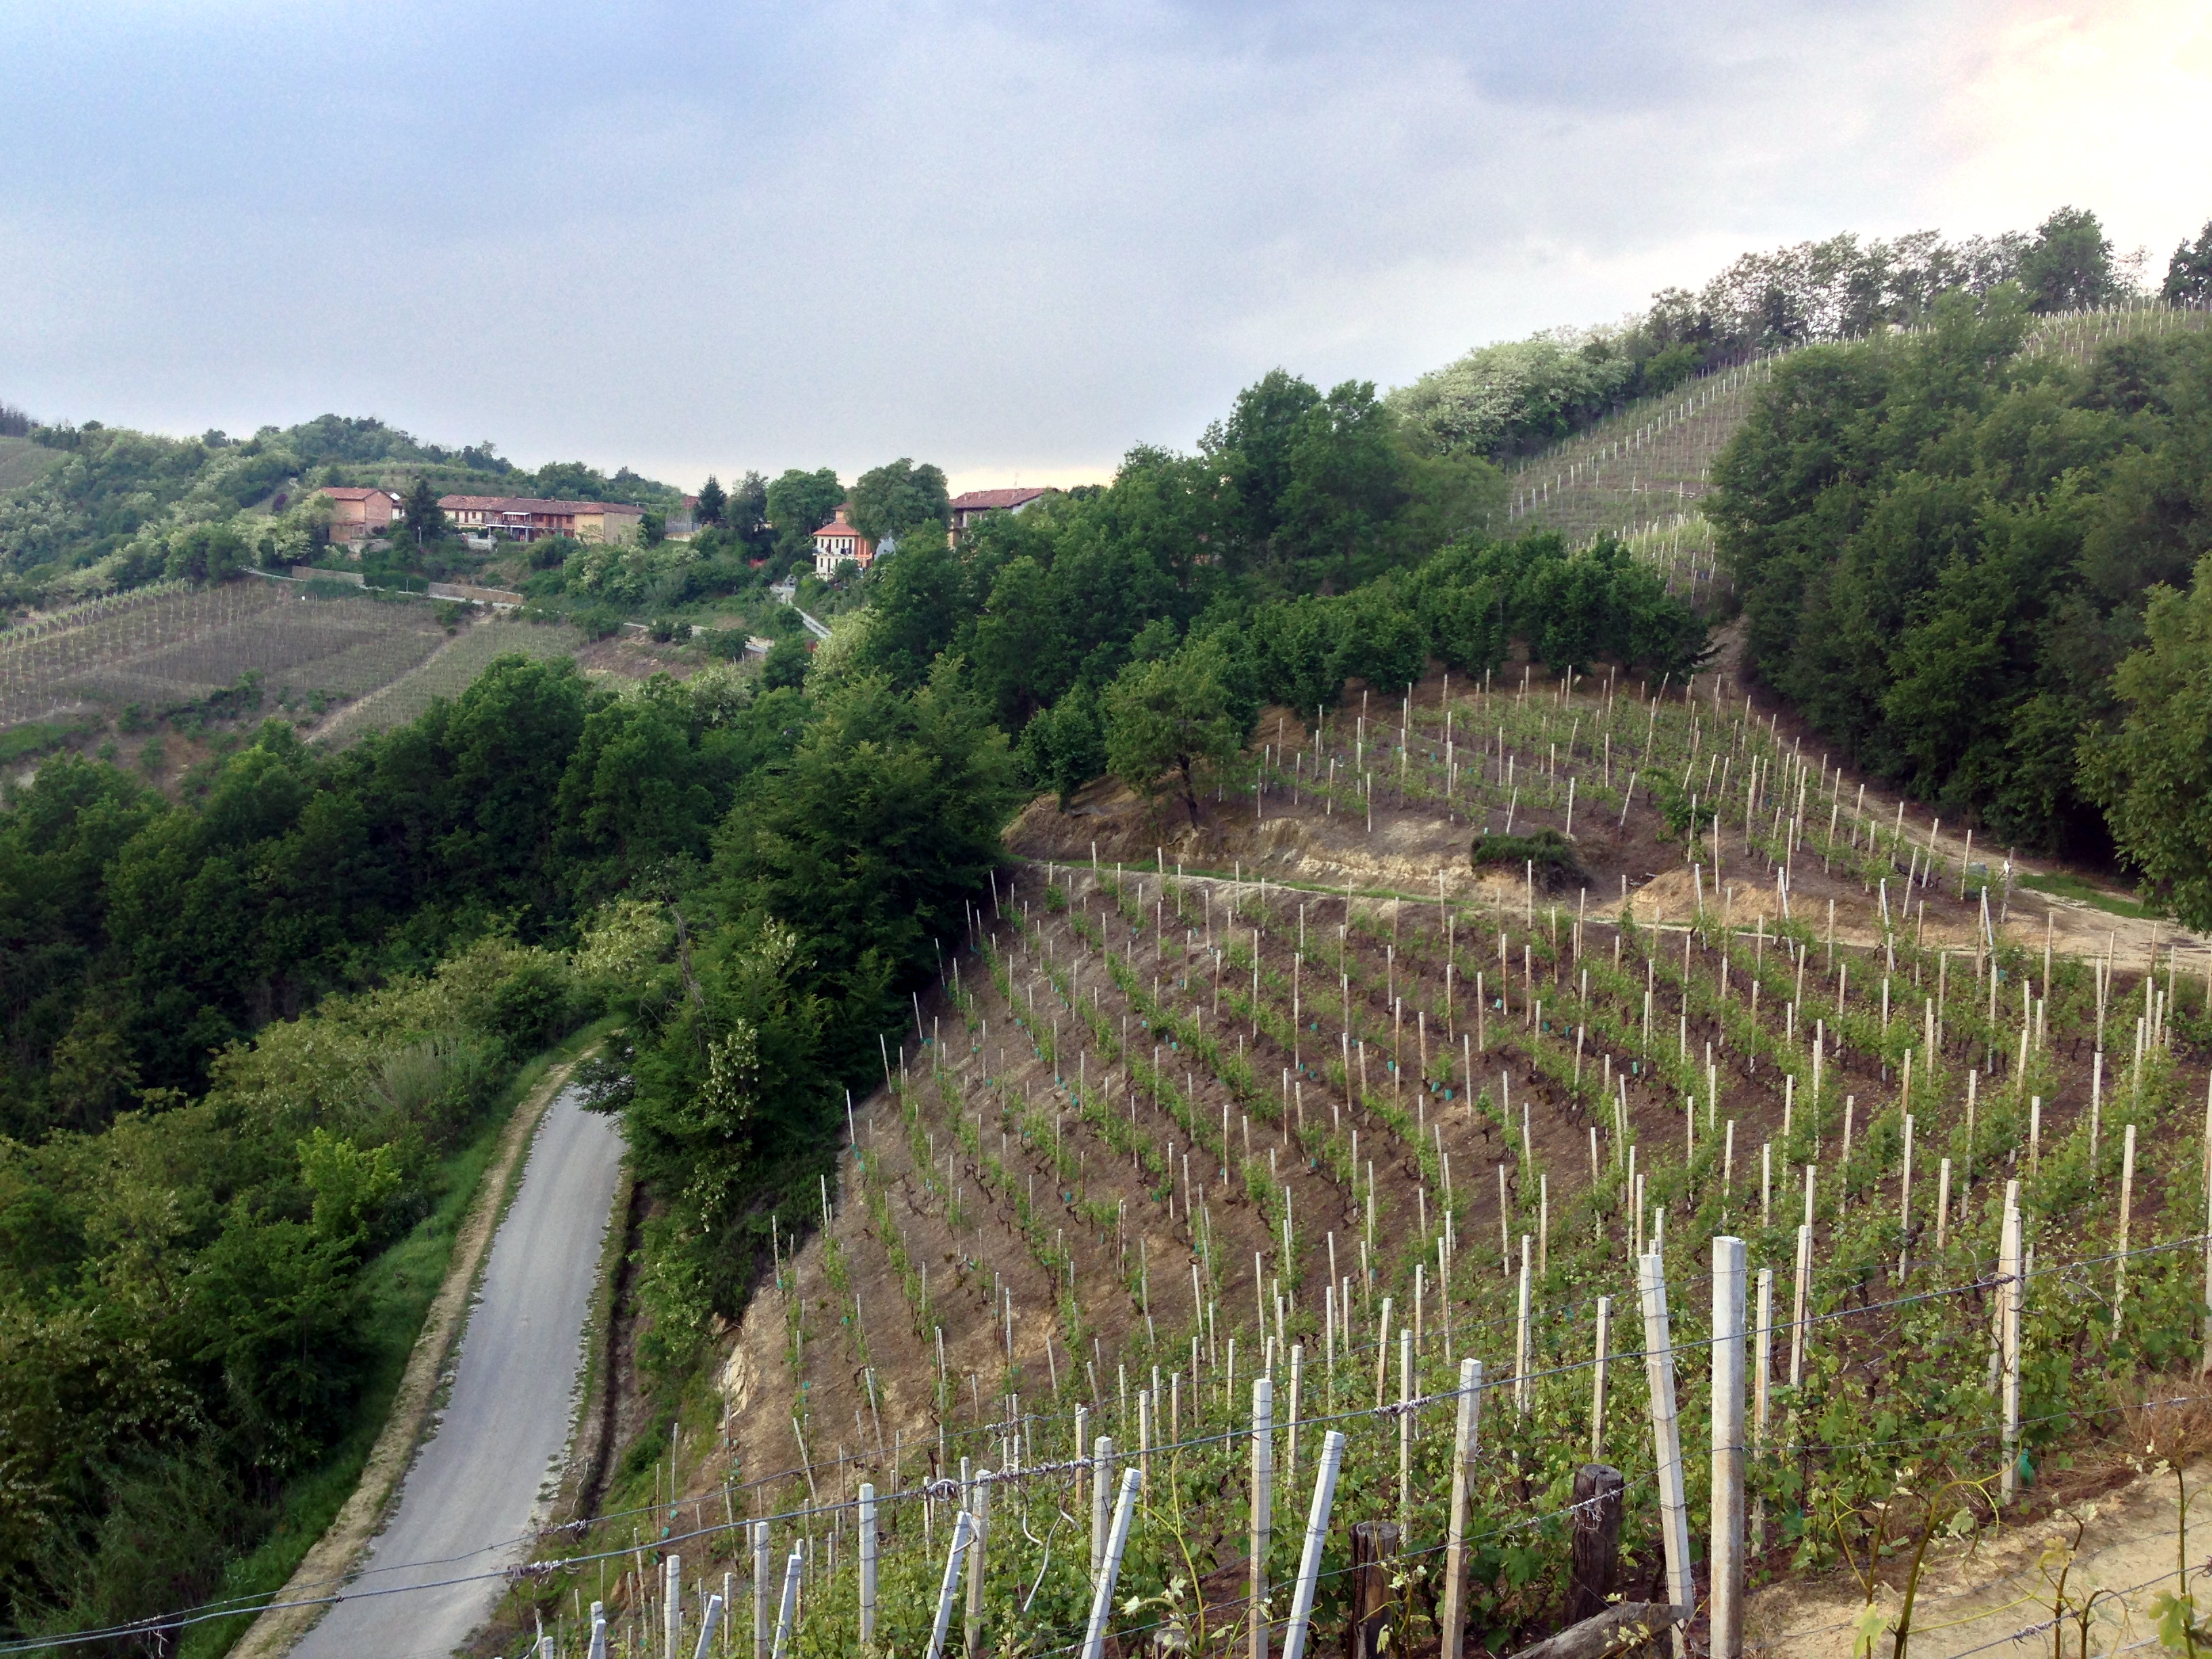 A view of the middle part of Valmaggiore vineyard.